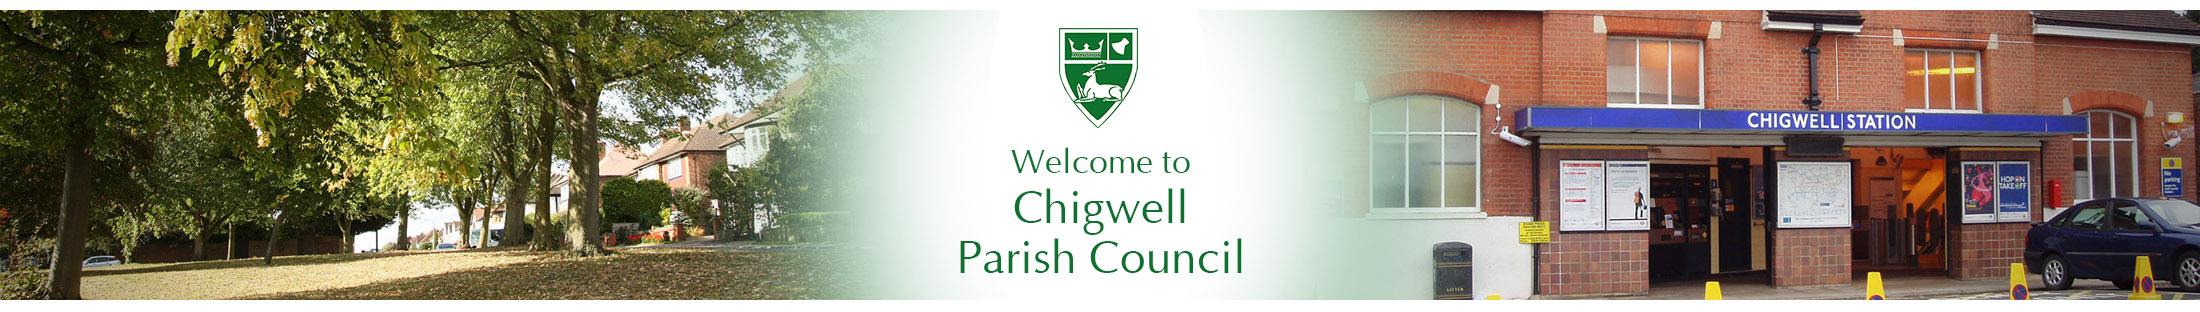 Header Image for Chigwell Parish Council